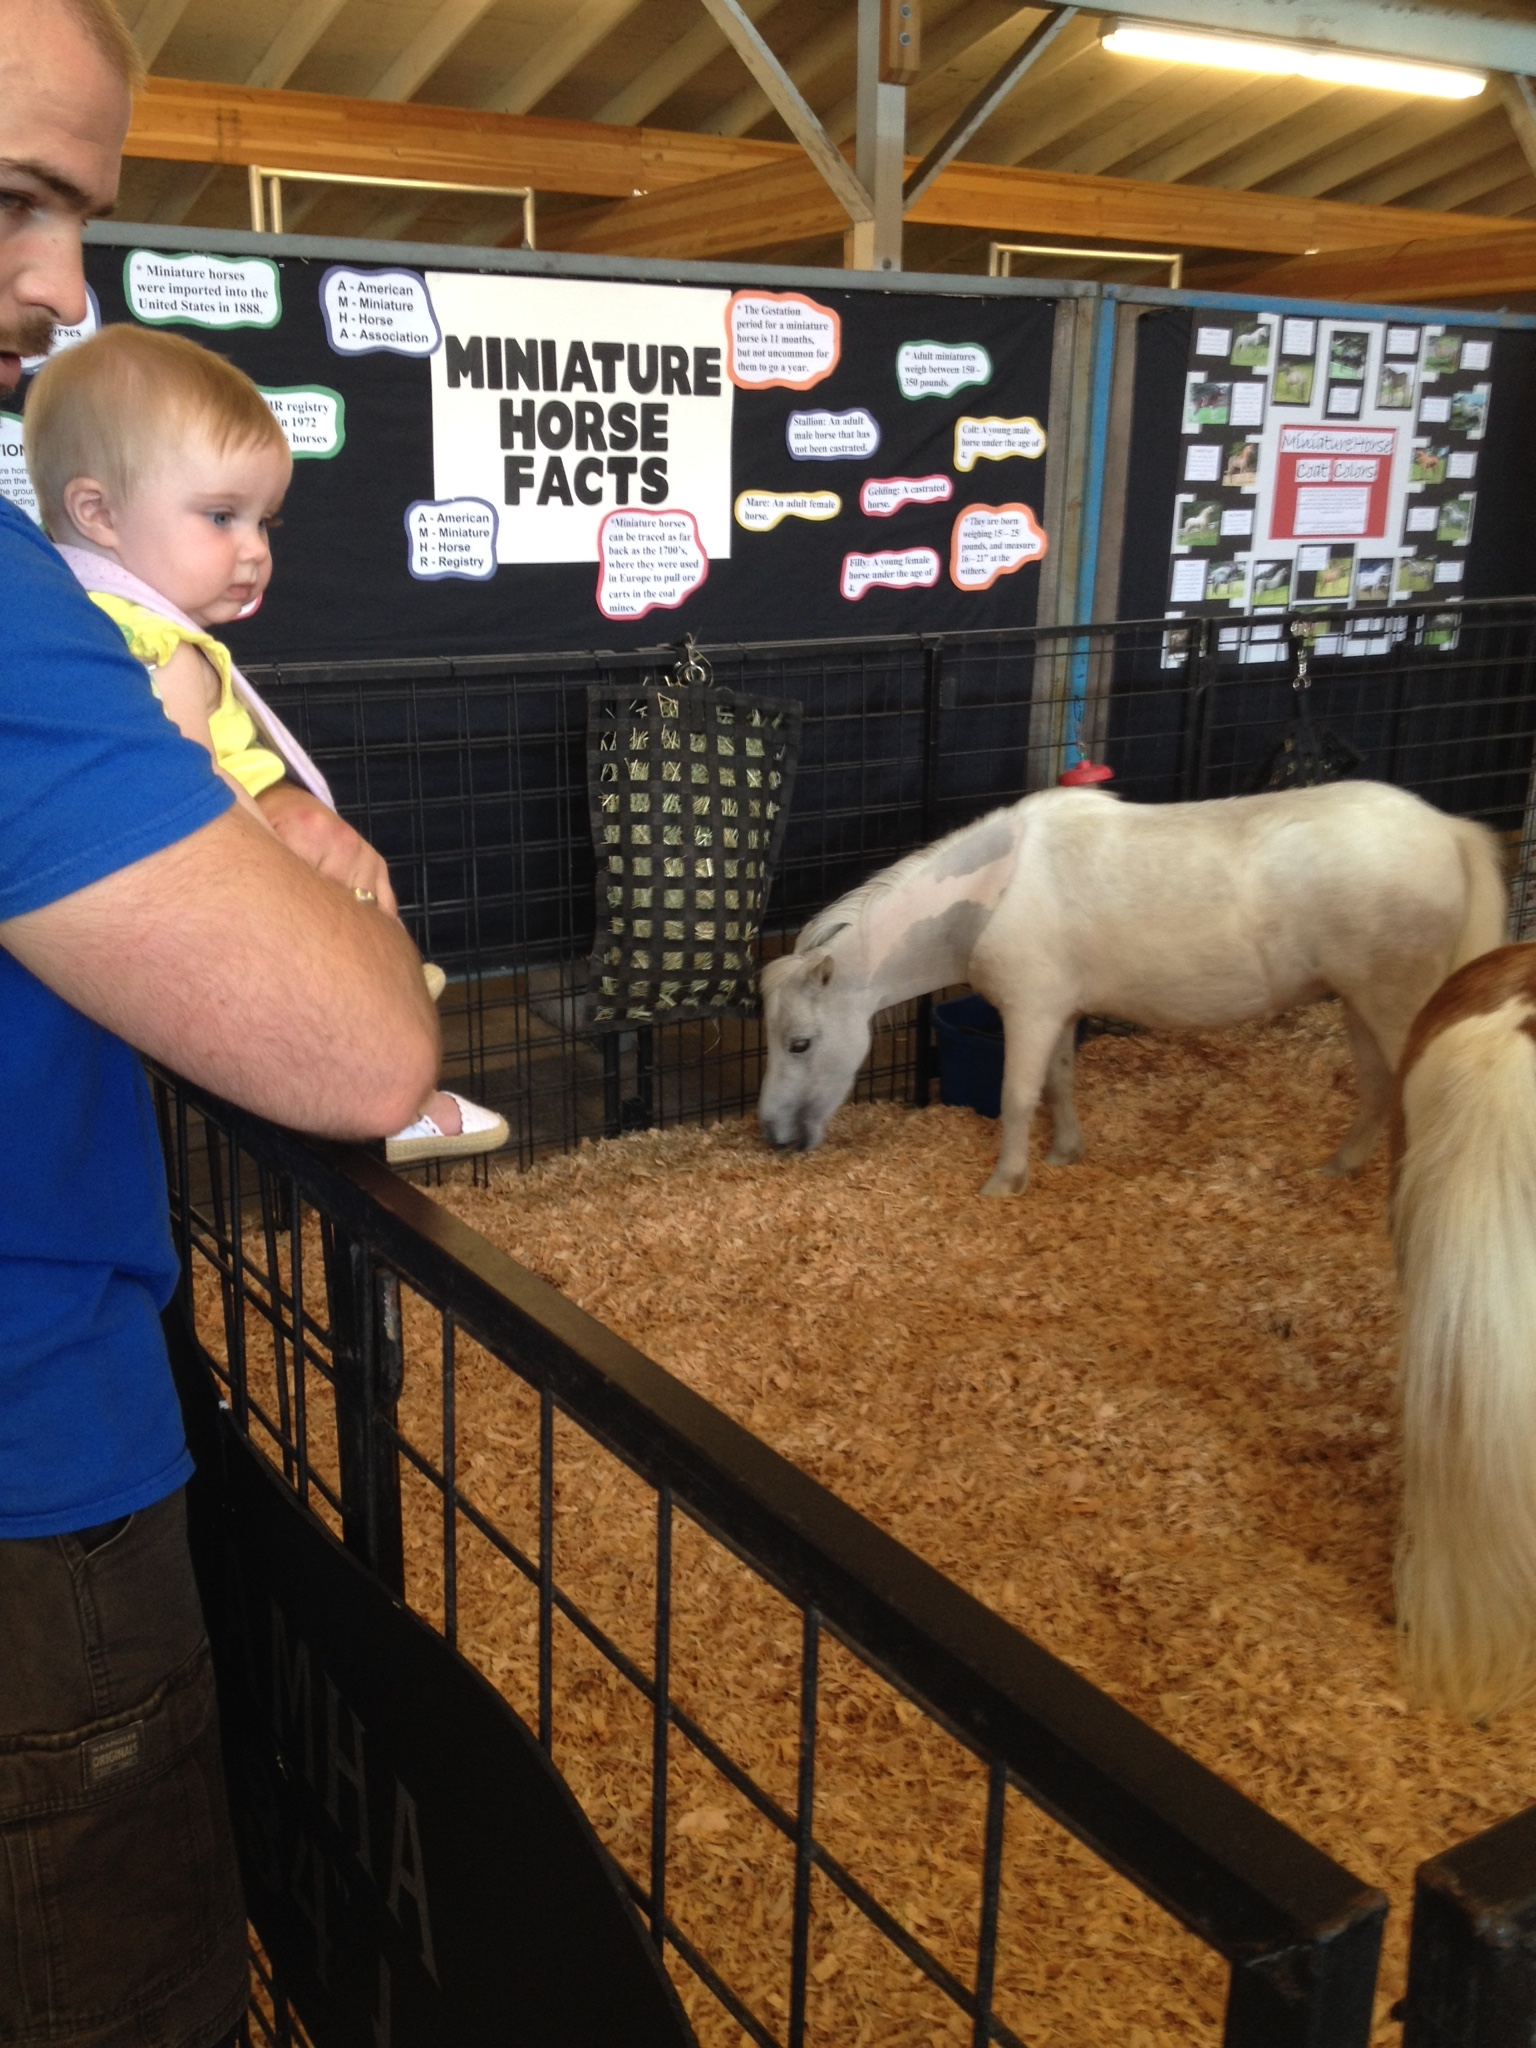 Wow, those little horses are almost Evie sized!